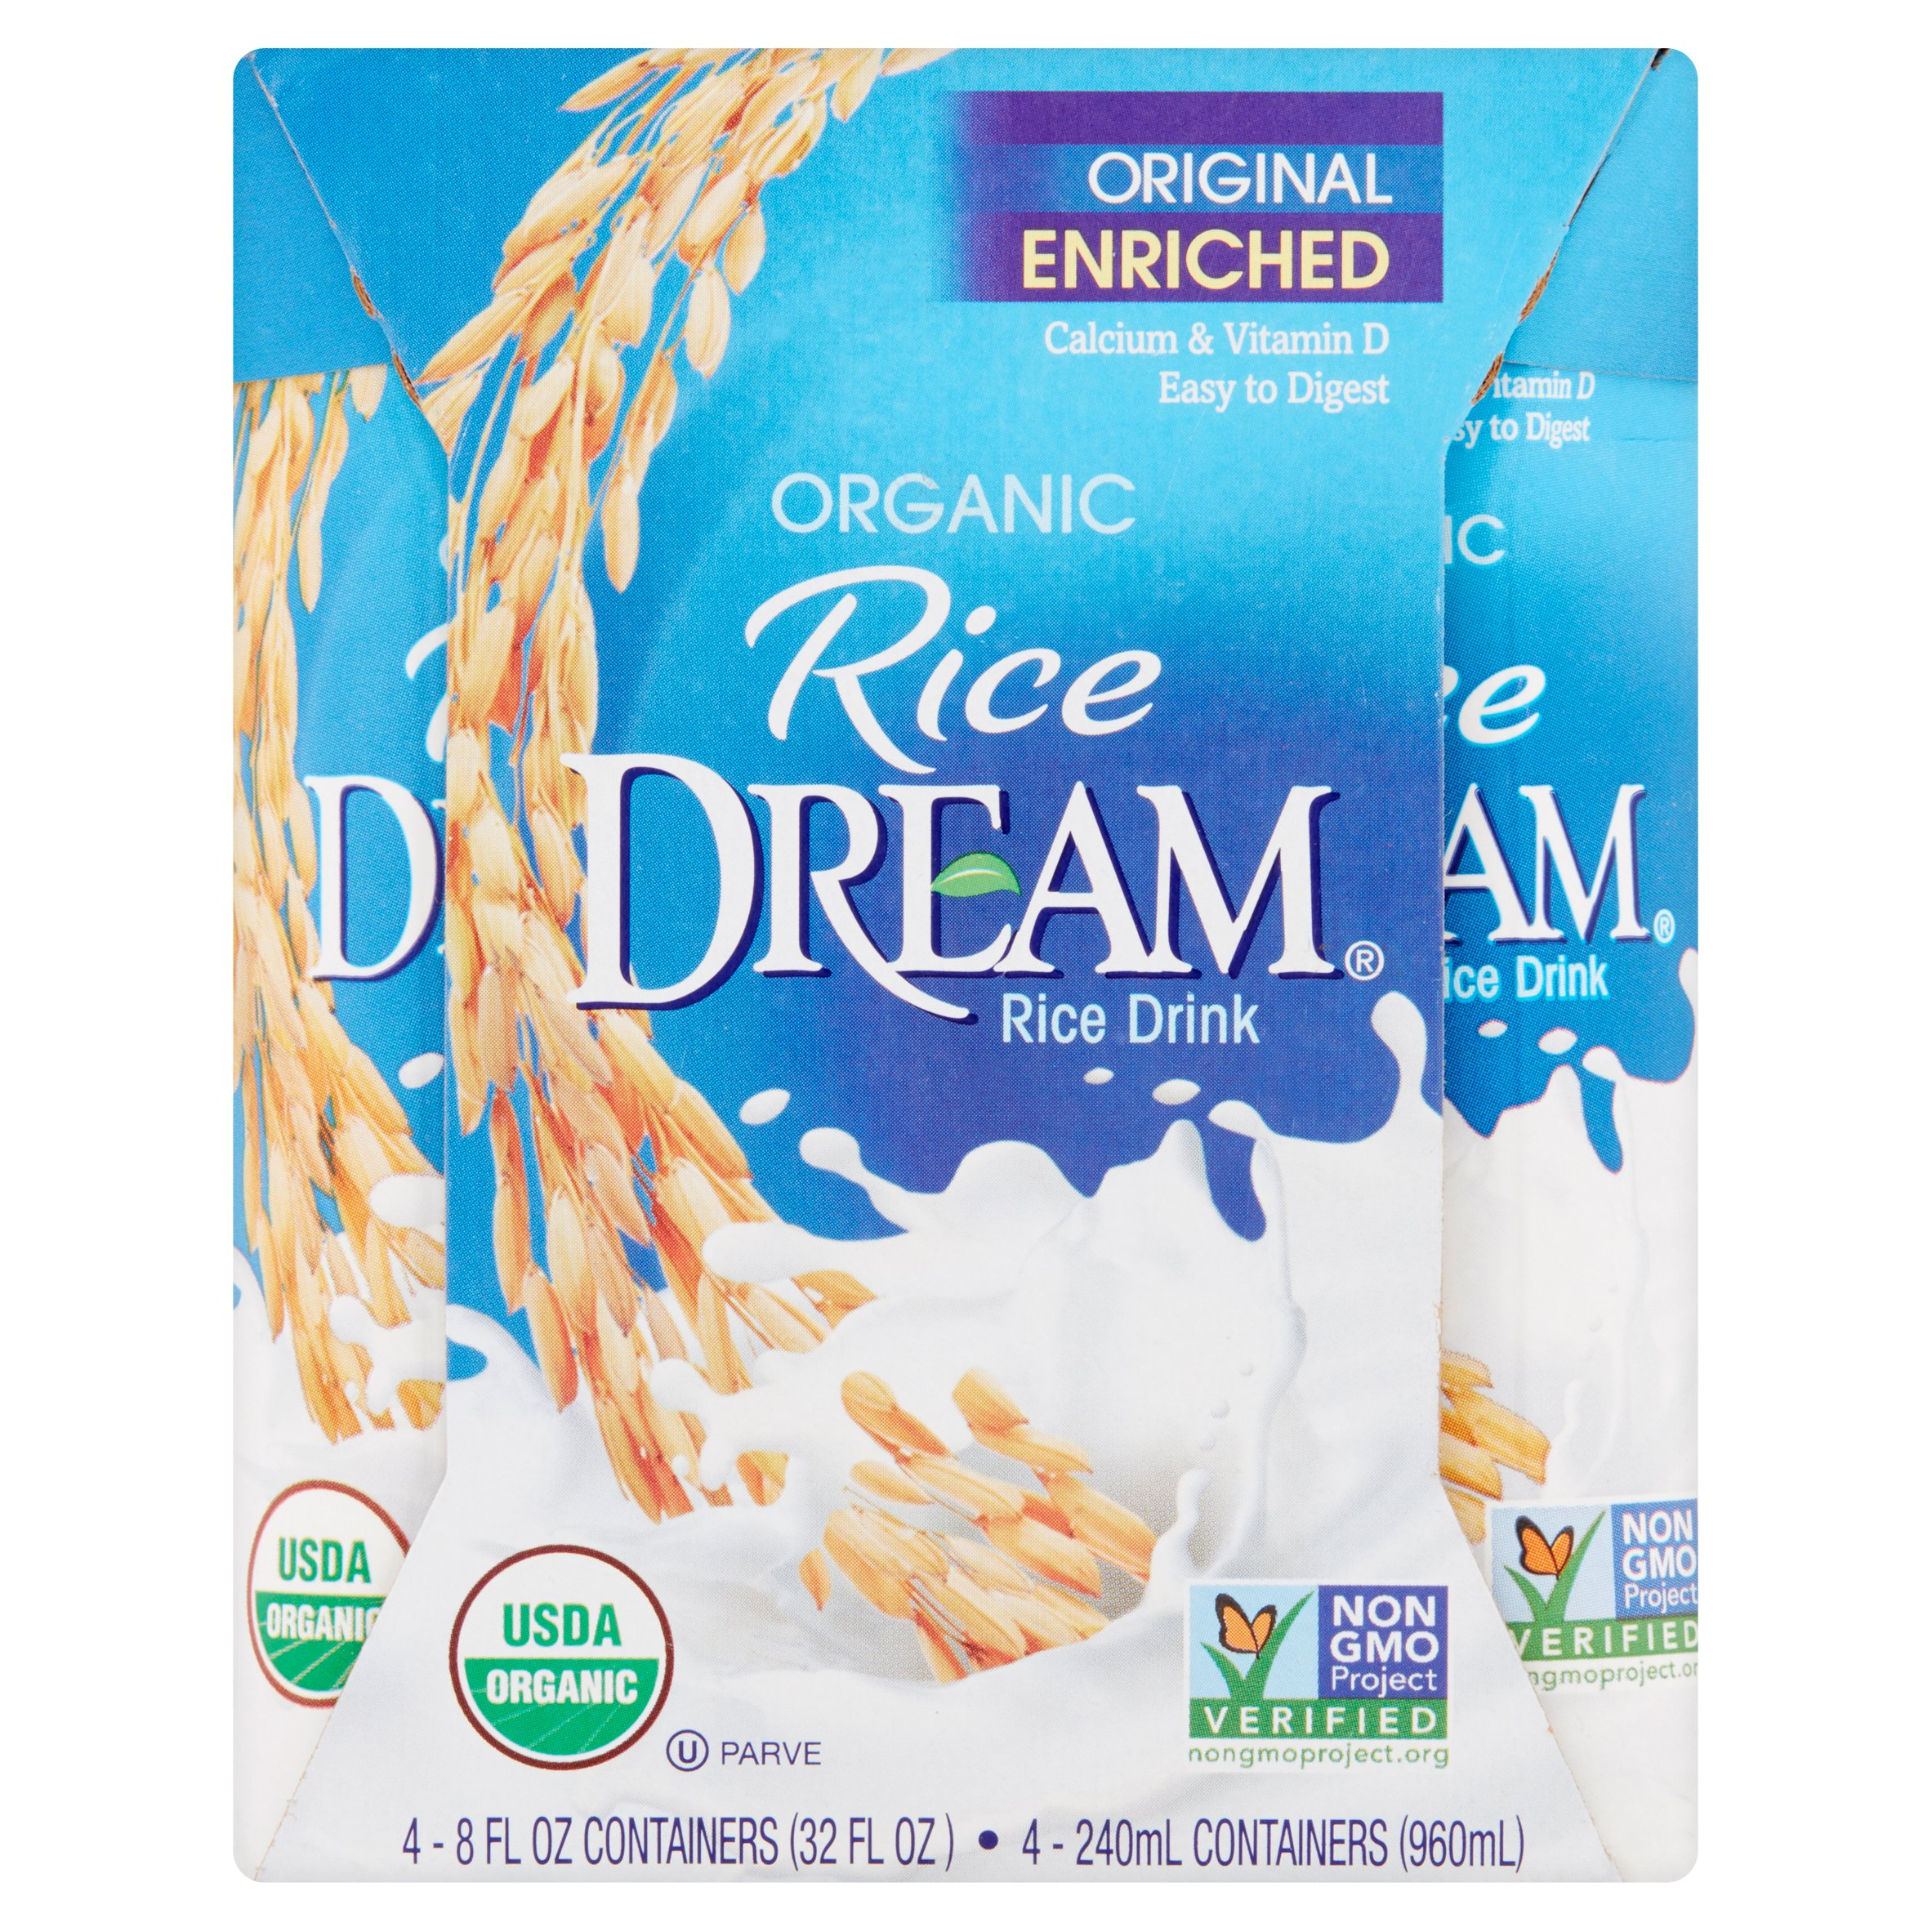 Sorry, no Rice Dream offers currently available.